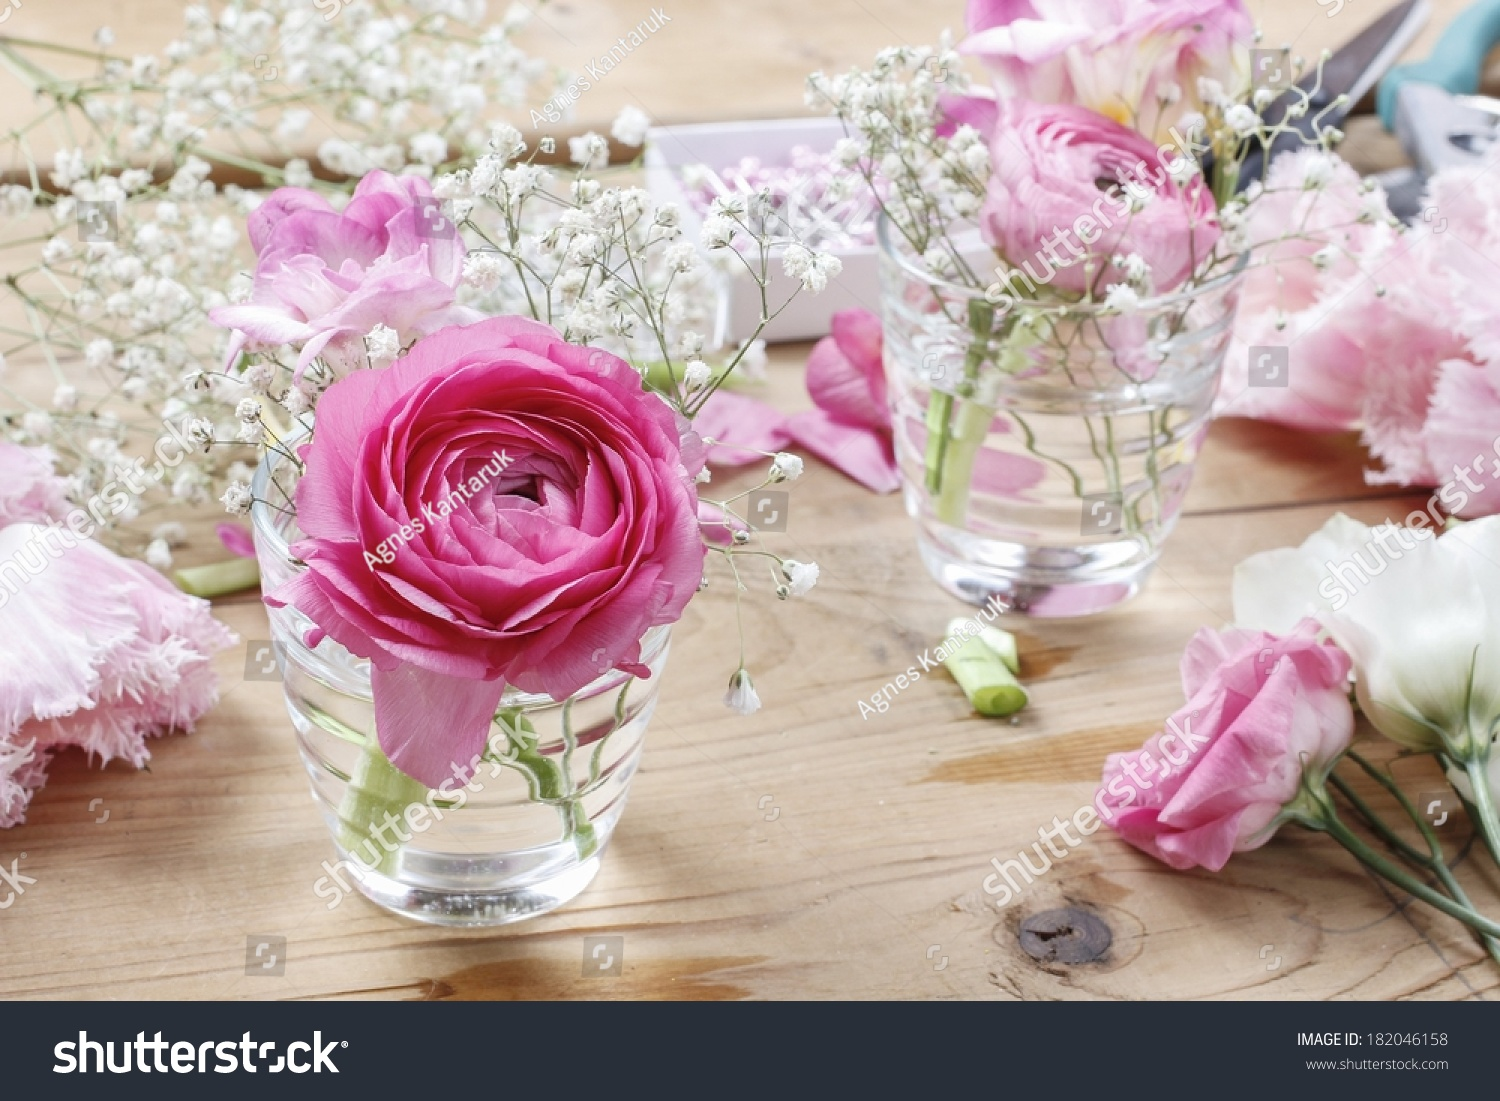 Florist workplace incomplete tiny bouquets in glass vases steps of id 182046158 izmirmasajfo